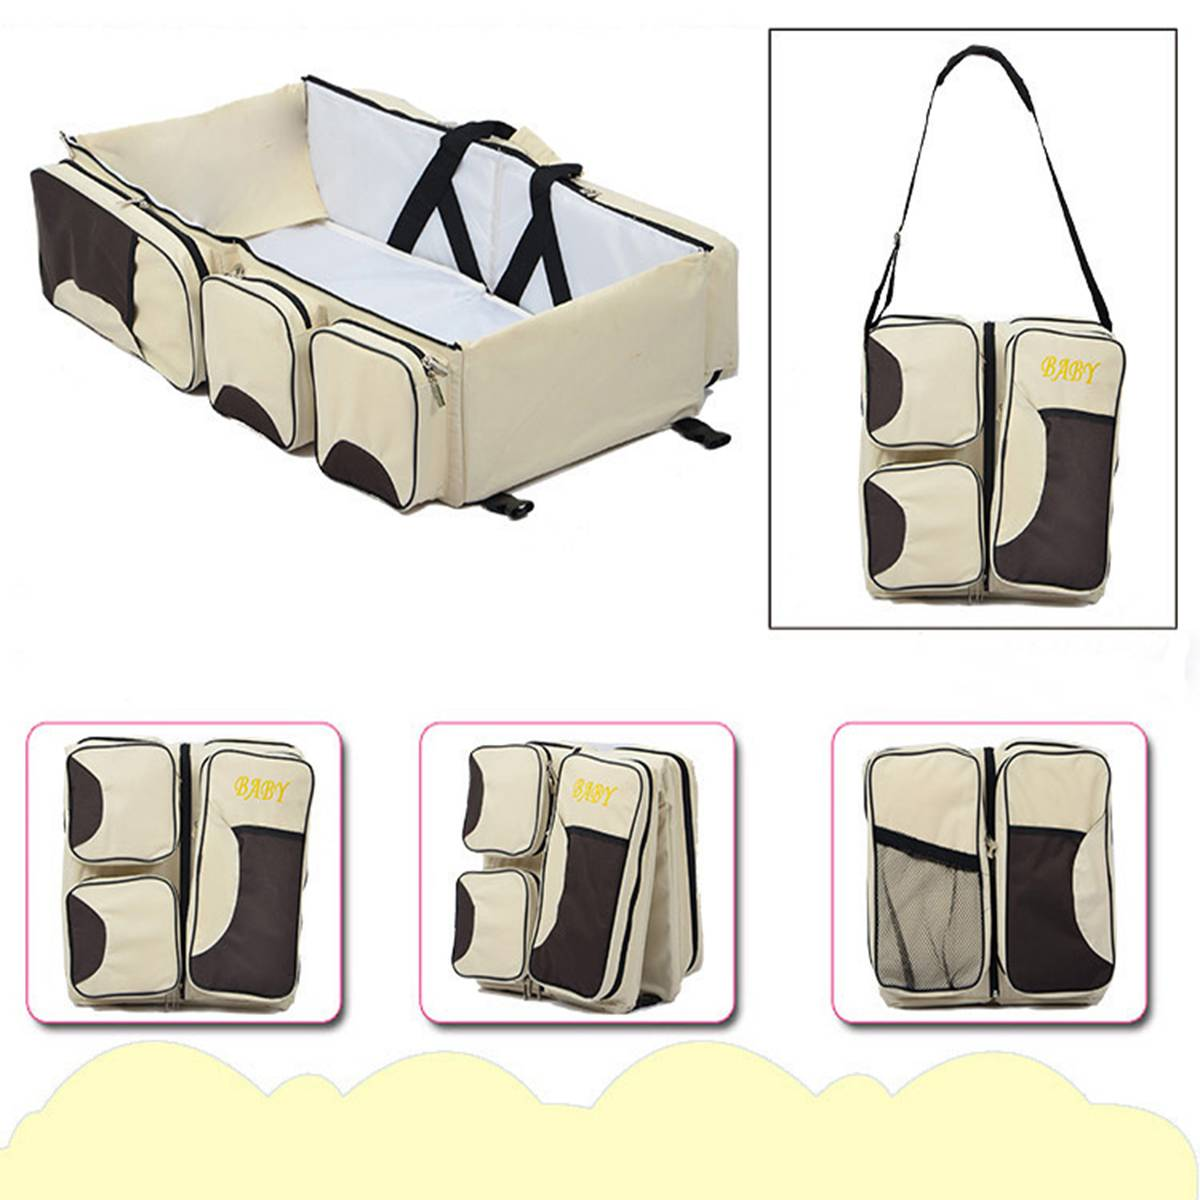 Fashion Diapers Bag Folding Mummy Travel Baby Bed Kids Bottle Cloth Case Large Space Nappy Bag 3 in 1 Portable Nappy Nursing BagFashion Diapers Bag Folding Mummy Travel Baby Bed Kids Bottle Cloth Case Large Space Nappy Bag 3 in 1 Portable Nappy Nursing Bag